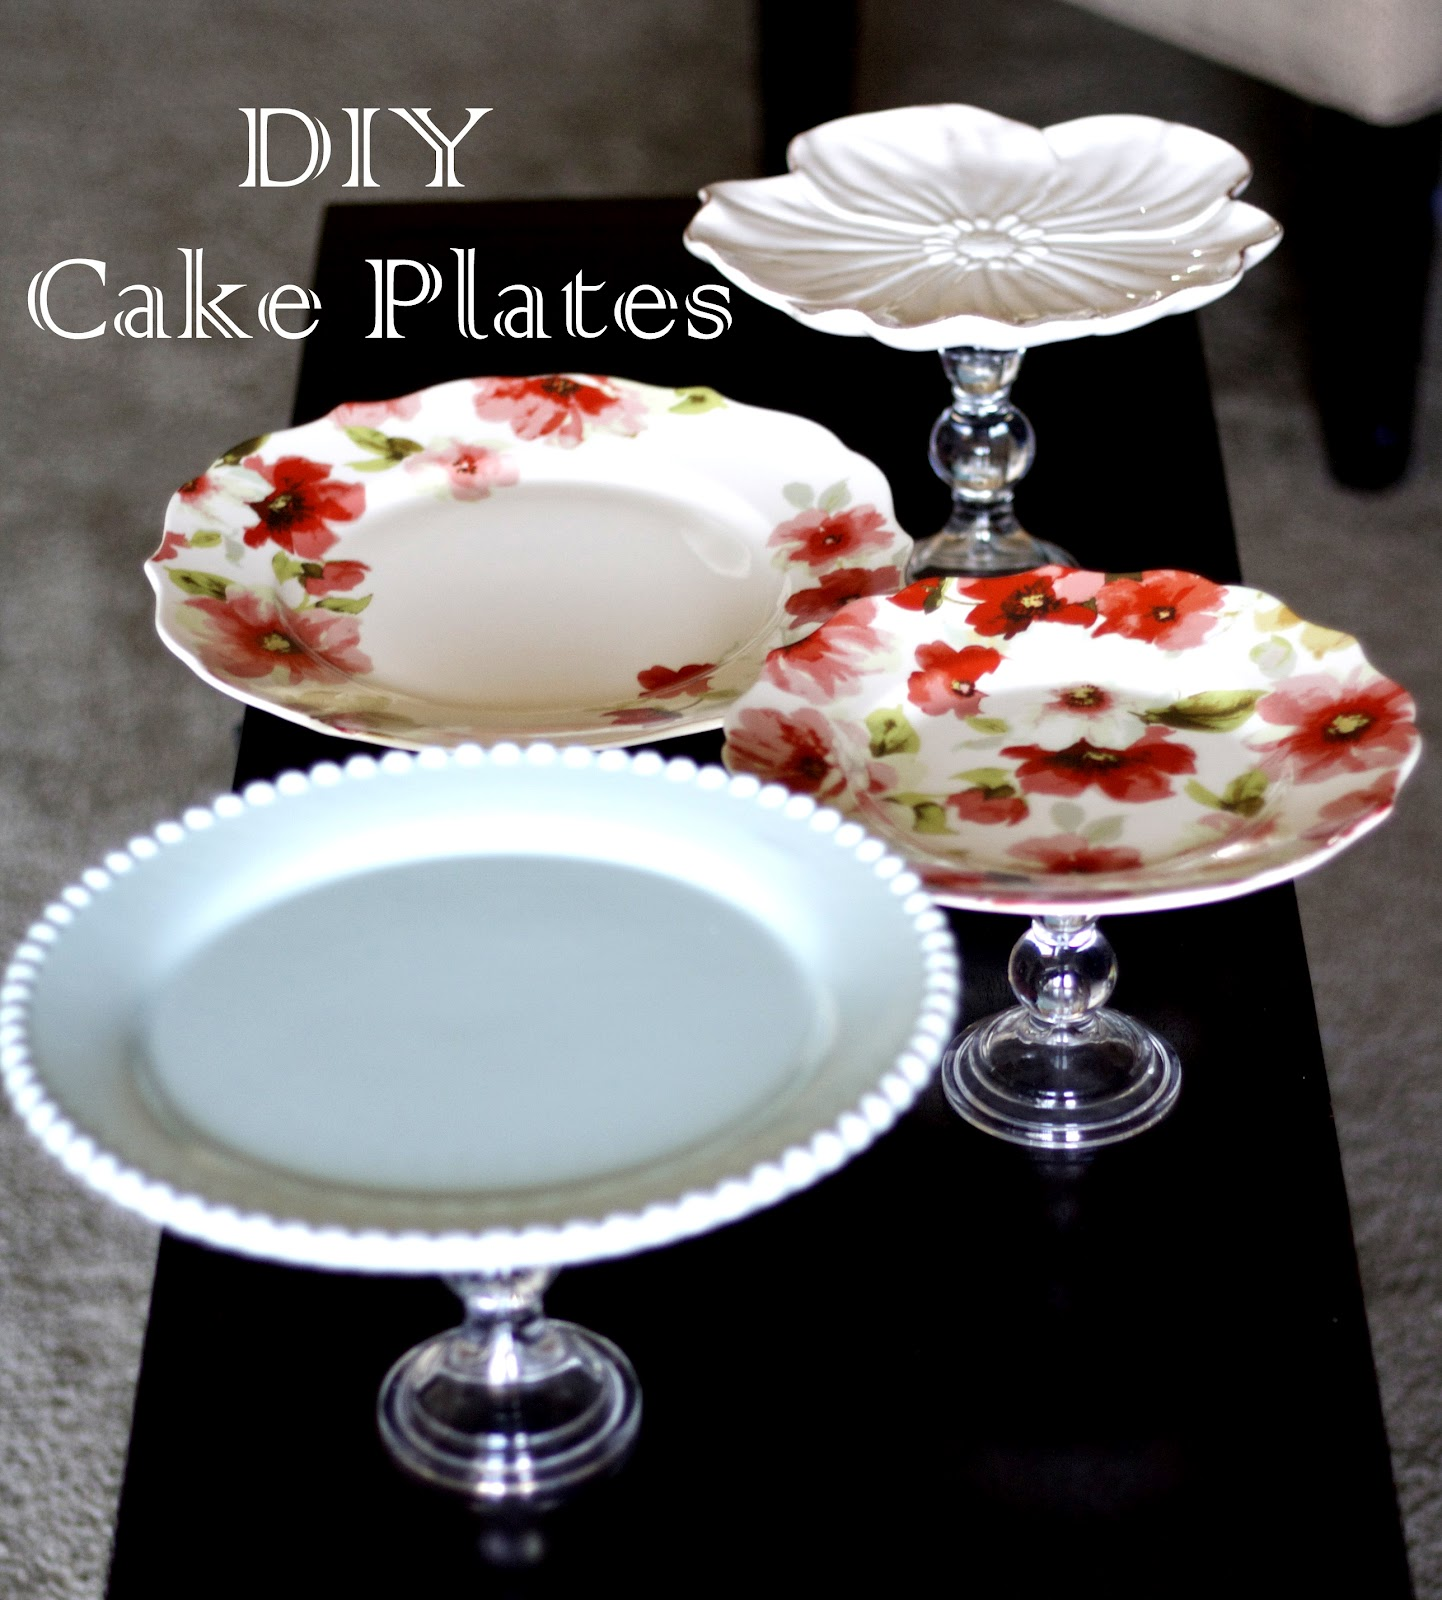 getz blogging diy cake plate s. Black Bedroom Furniture Sets. Home Design Ideas